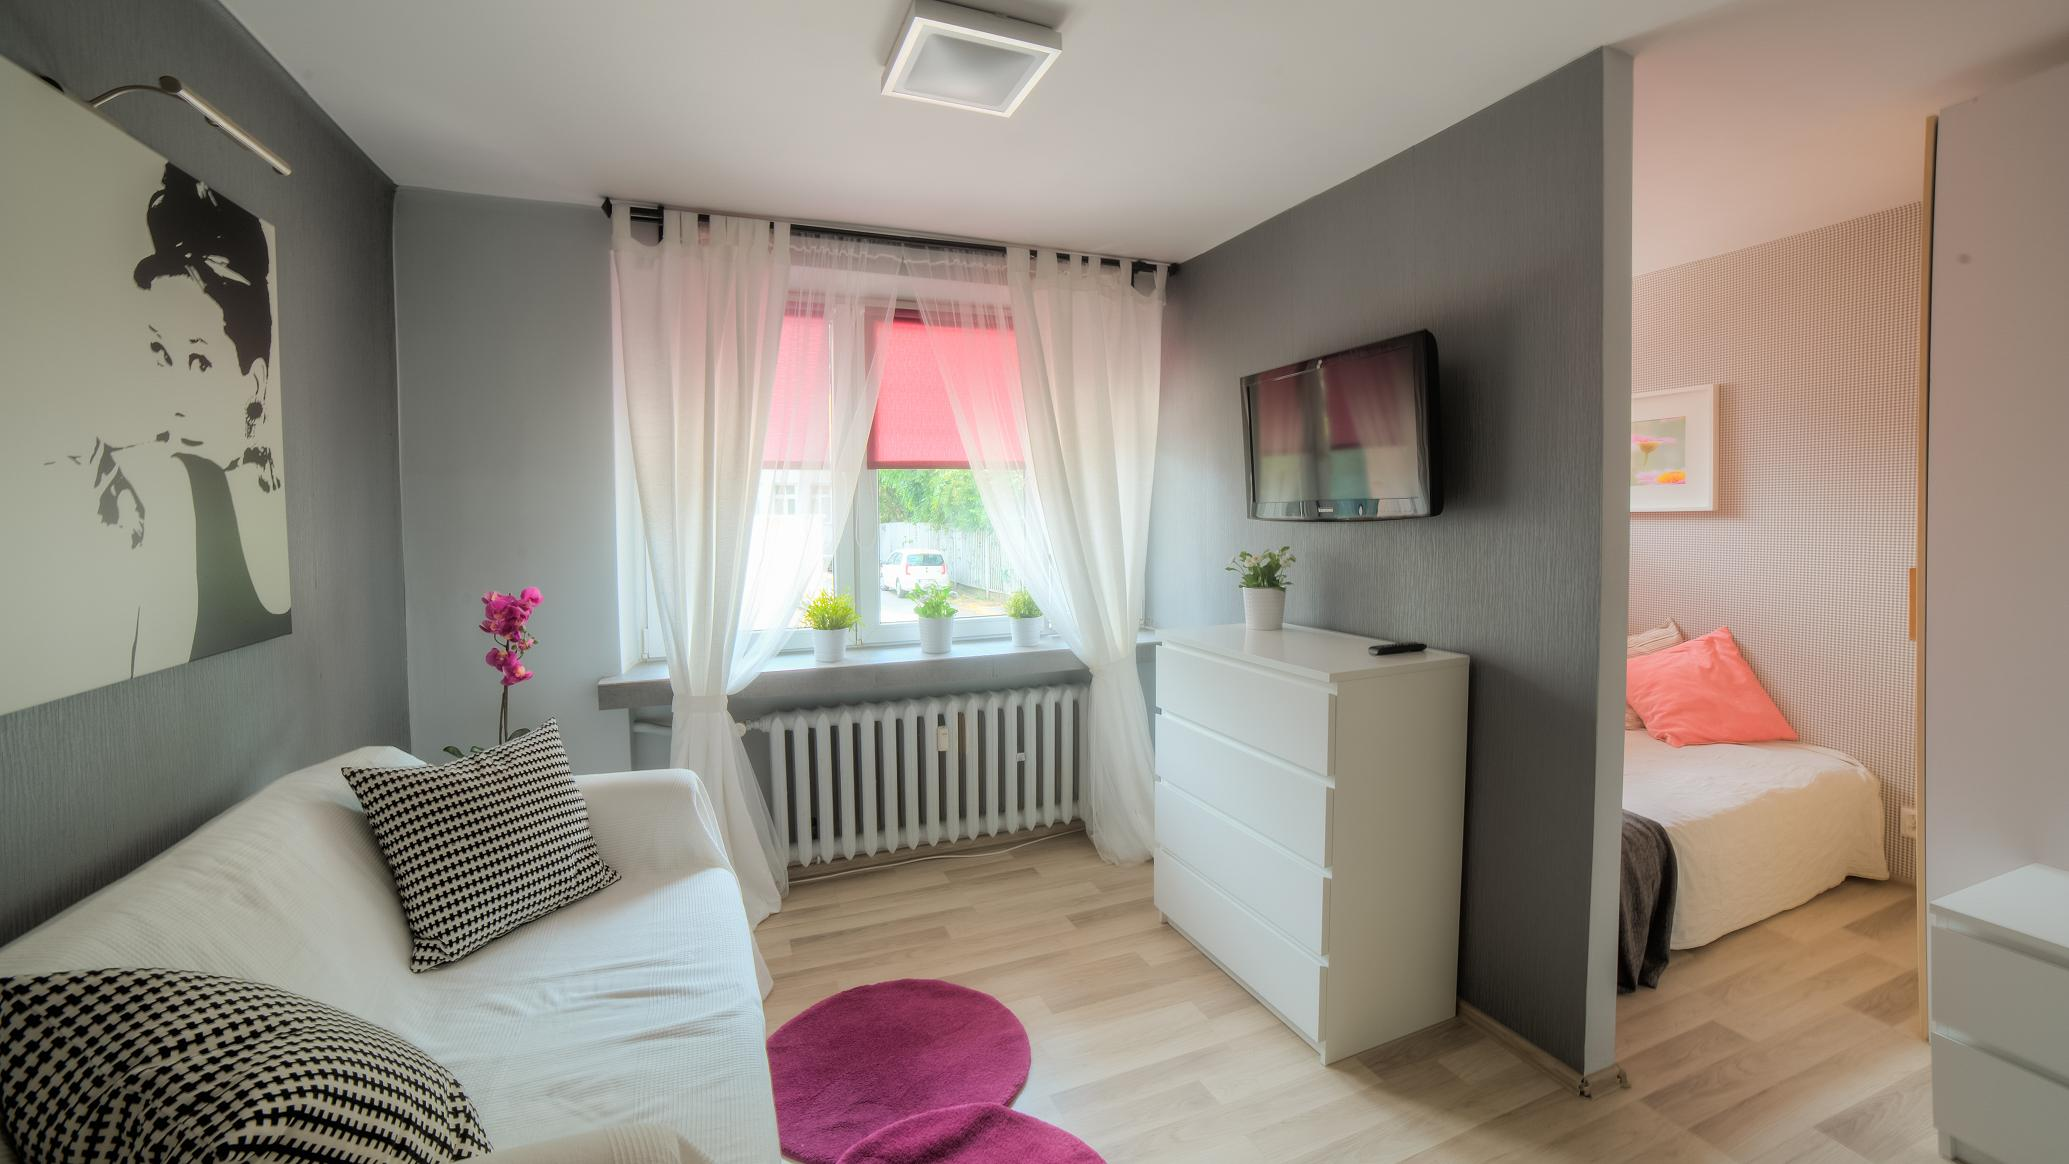 Cracow, Old Town Helclow Str, 1 Bedroom +livingroom, 2400. Kitchen Sink Cabinet. No Cabinet Kitchen. Virtual Kitchen Cabinet Designer. Kitchen Cabinets Height. Kitchen Cabinet Discount. Utility Kitchen Cabinet. Replace Kitchen Cabinet. Kitchen Cabinets Manufacturers Wholesale